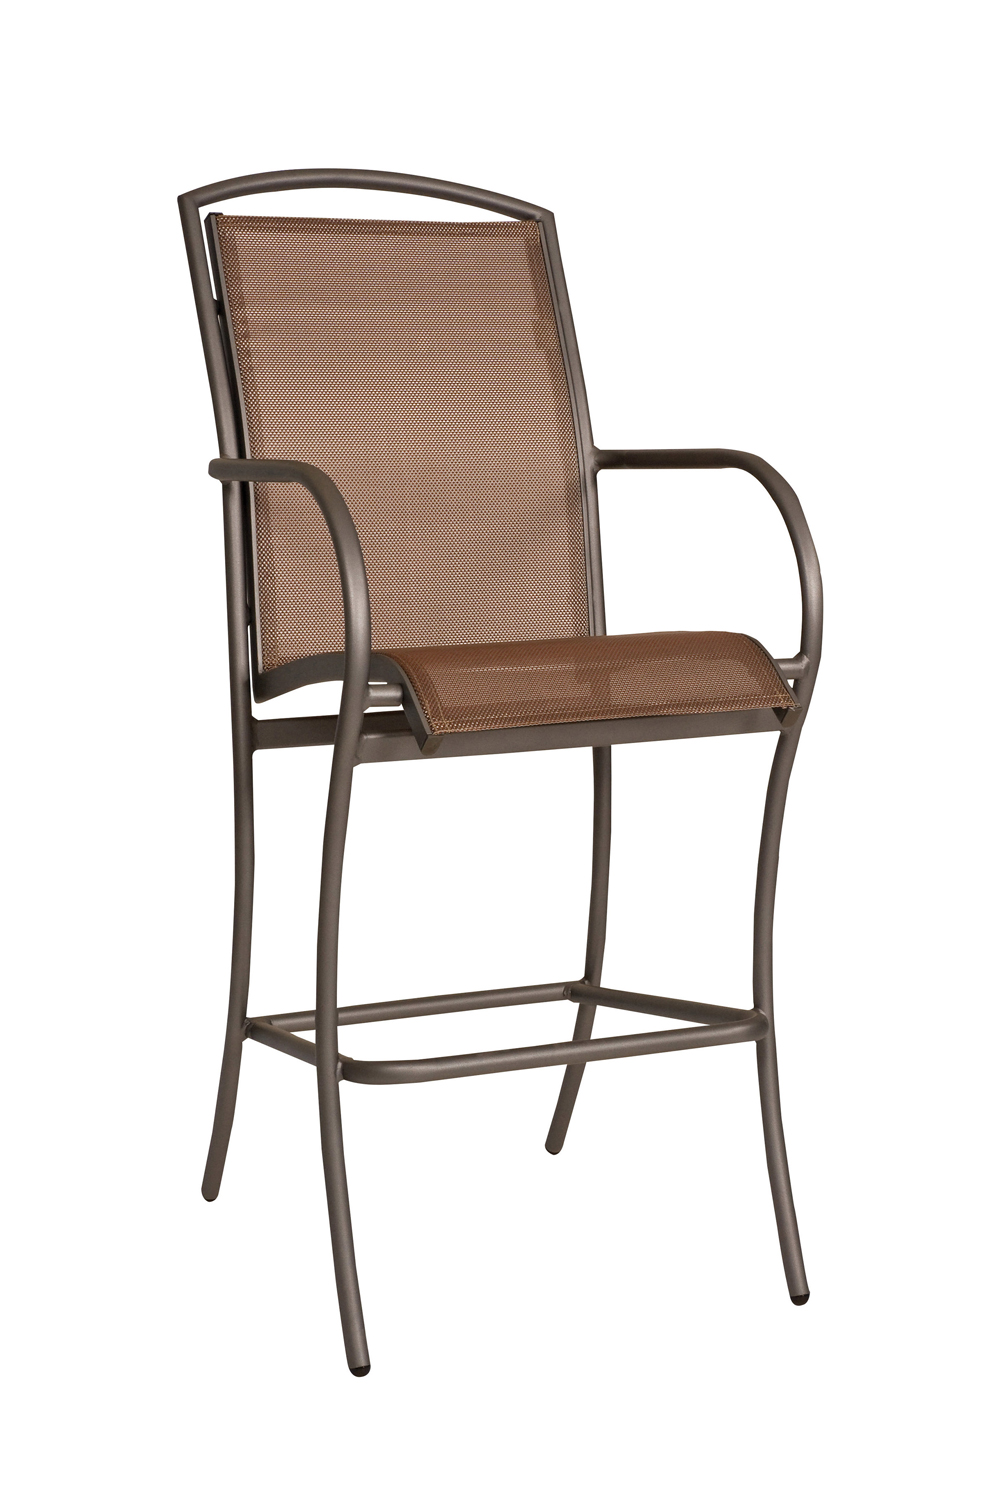 Rivington Sling Outdoor Bar Stool with Arms